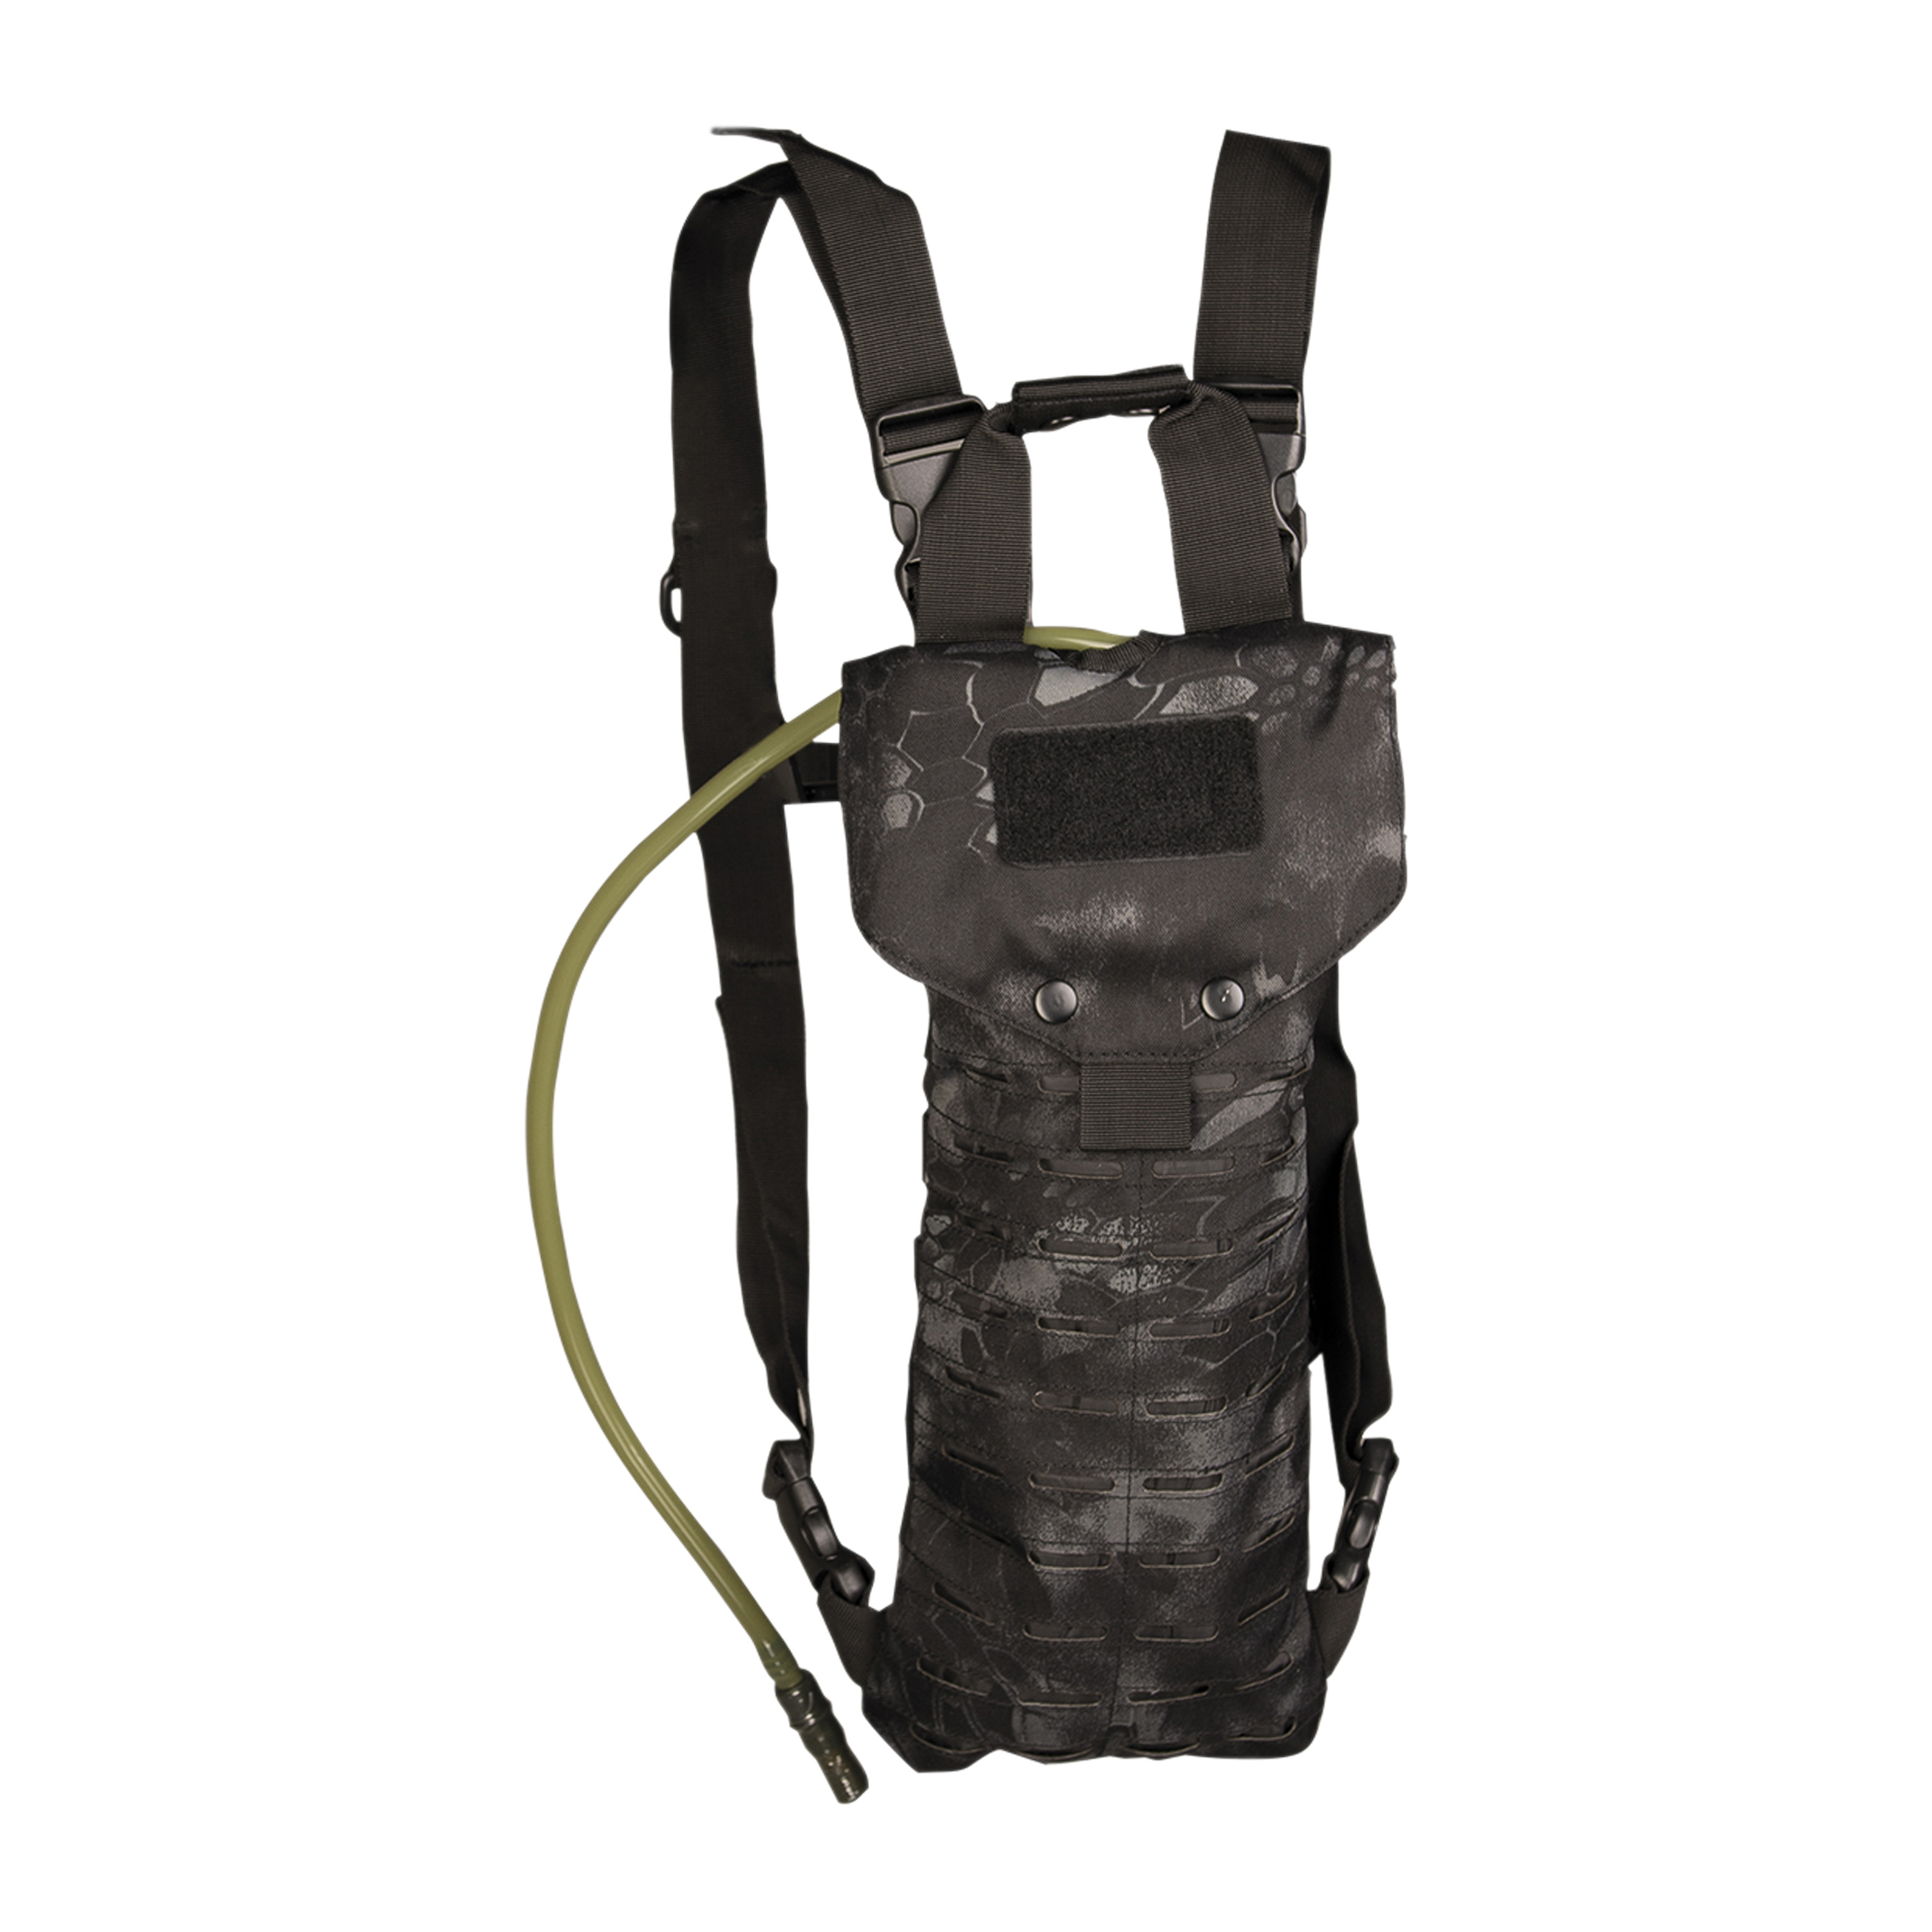 Rucksack Hydration Pack Laser Cut 2.5 L mandra night